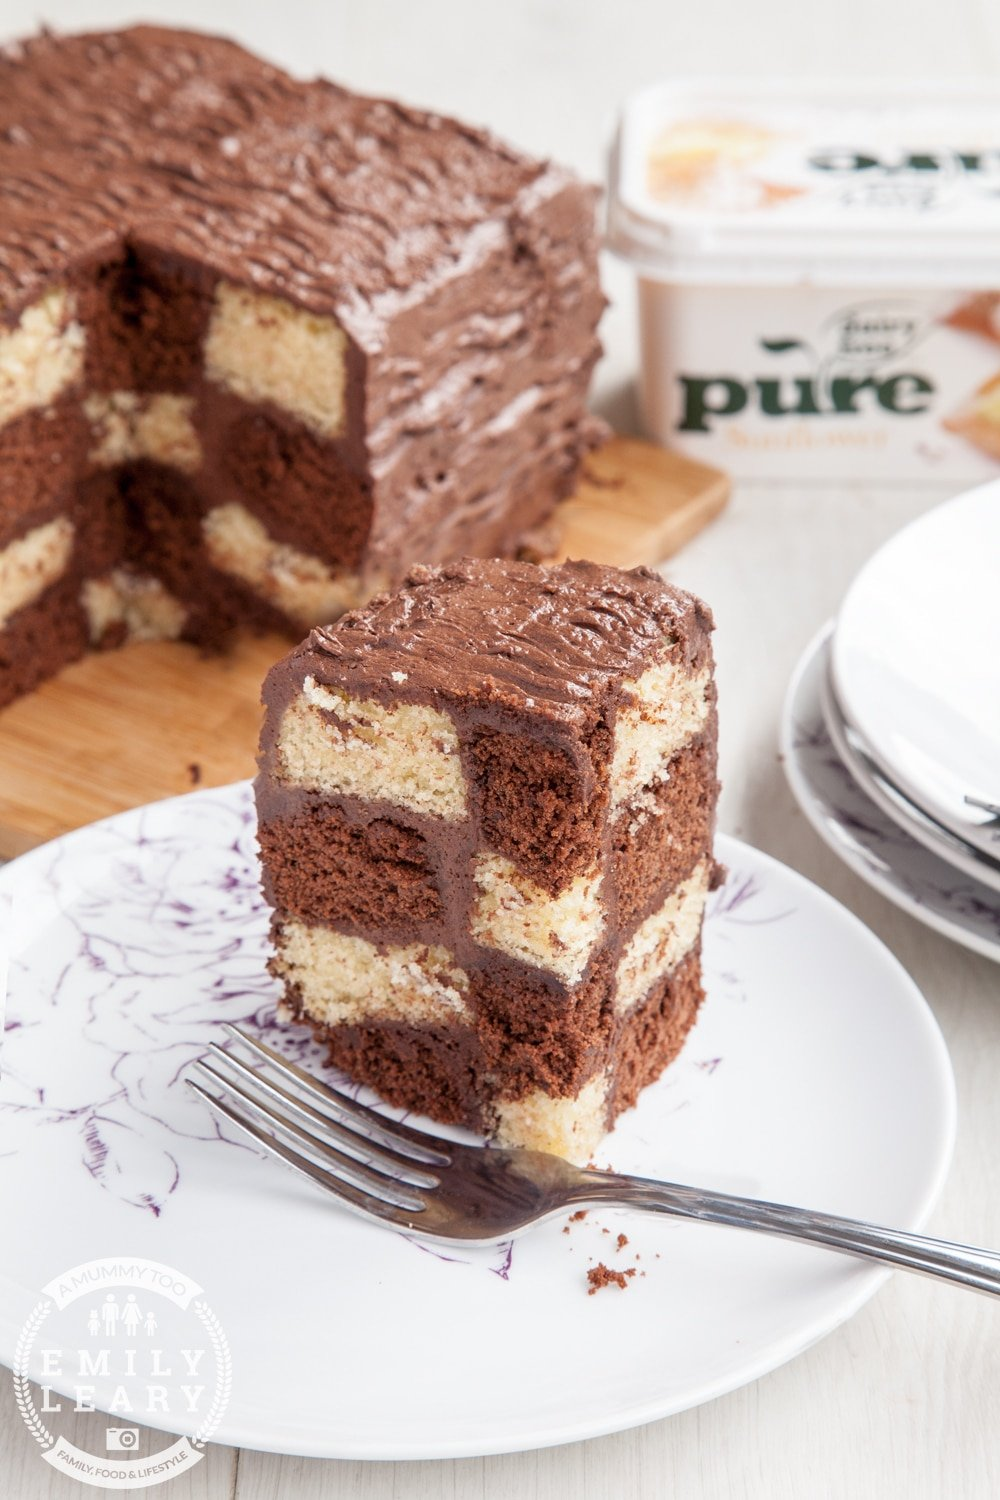 Dairy-free, gluten-free chocolate and vanilla checkerboard cake